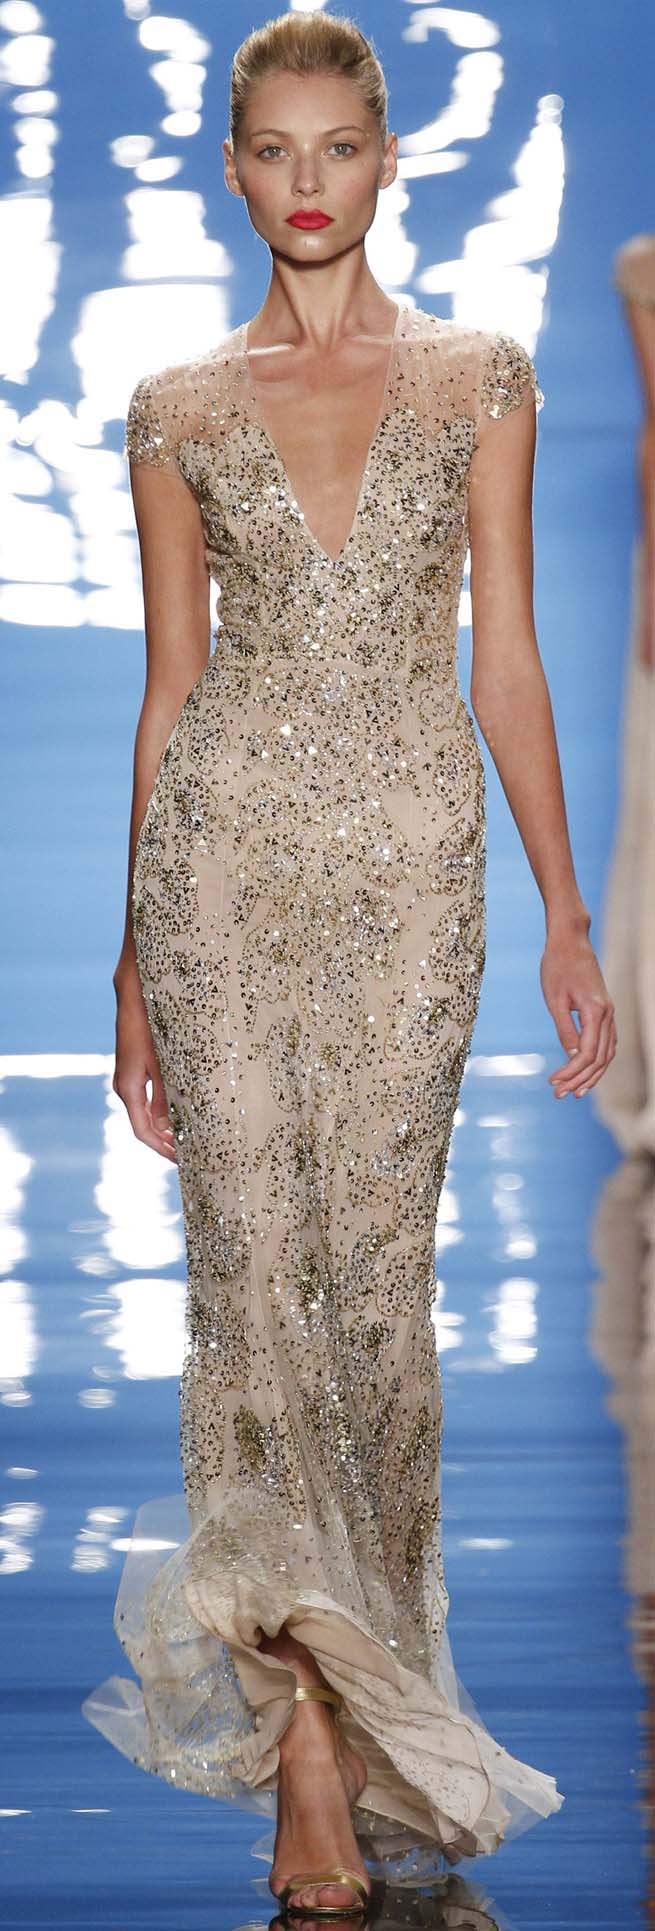 Reem Acra Spring Summer 2013 Ready-To-Wear Collection